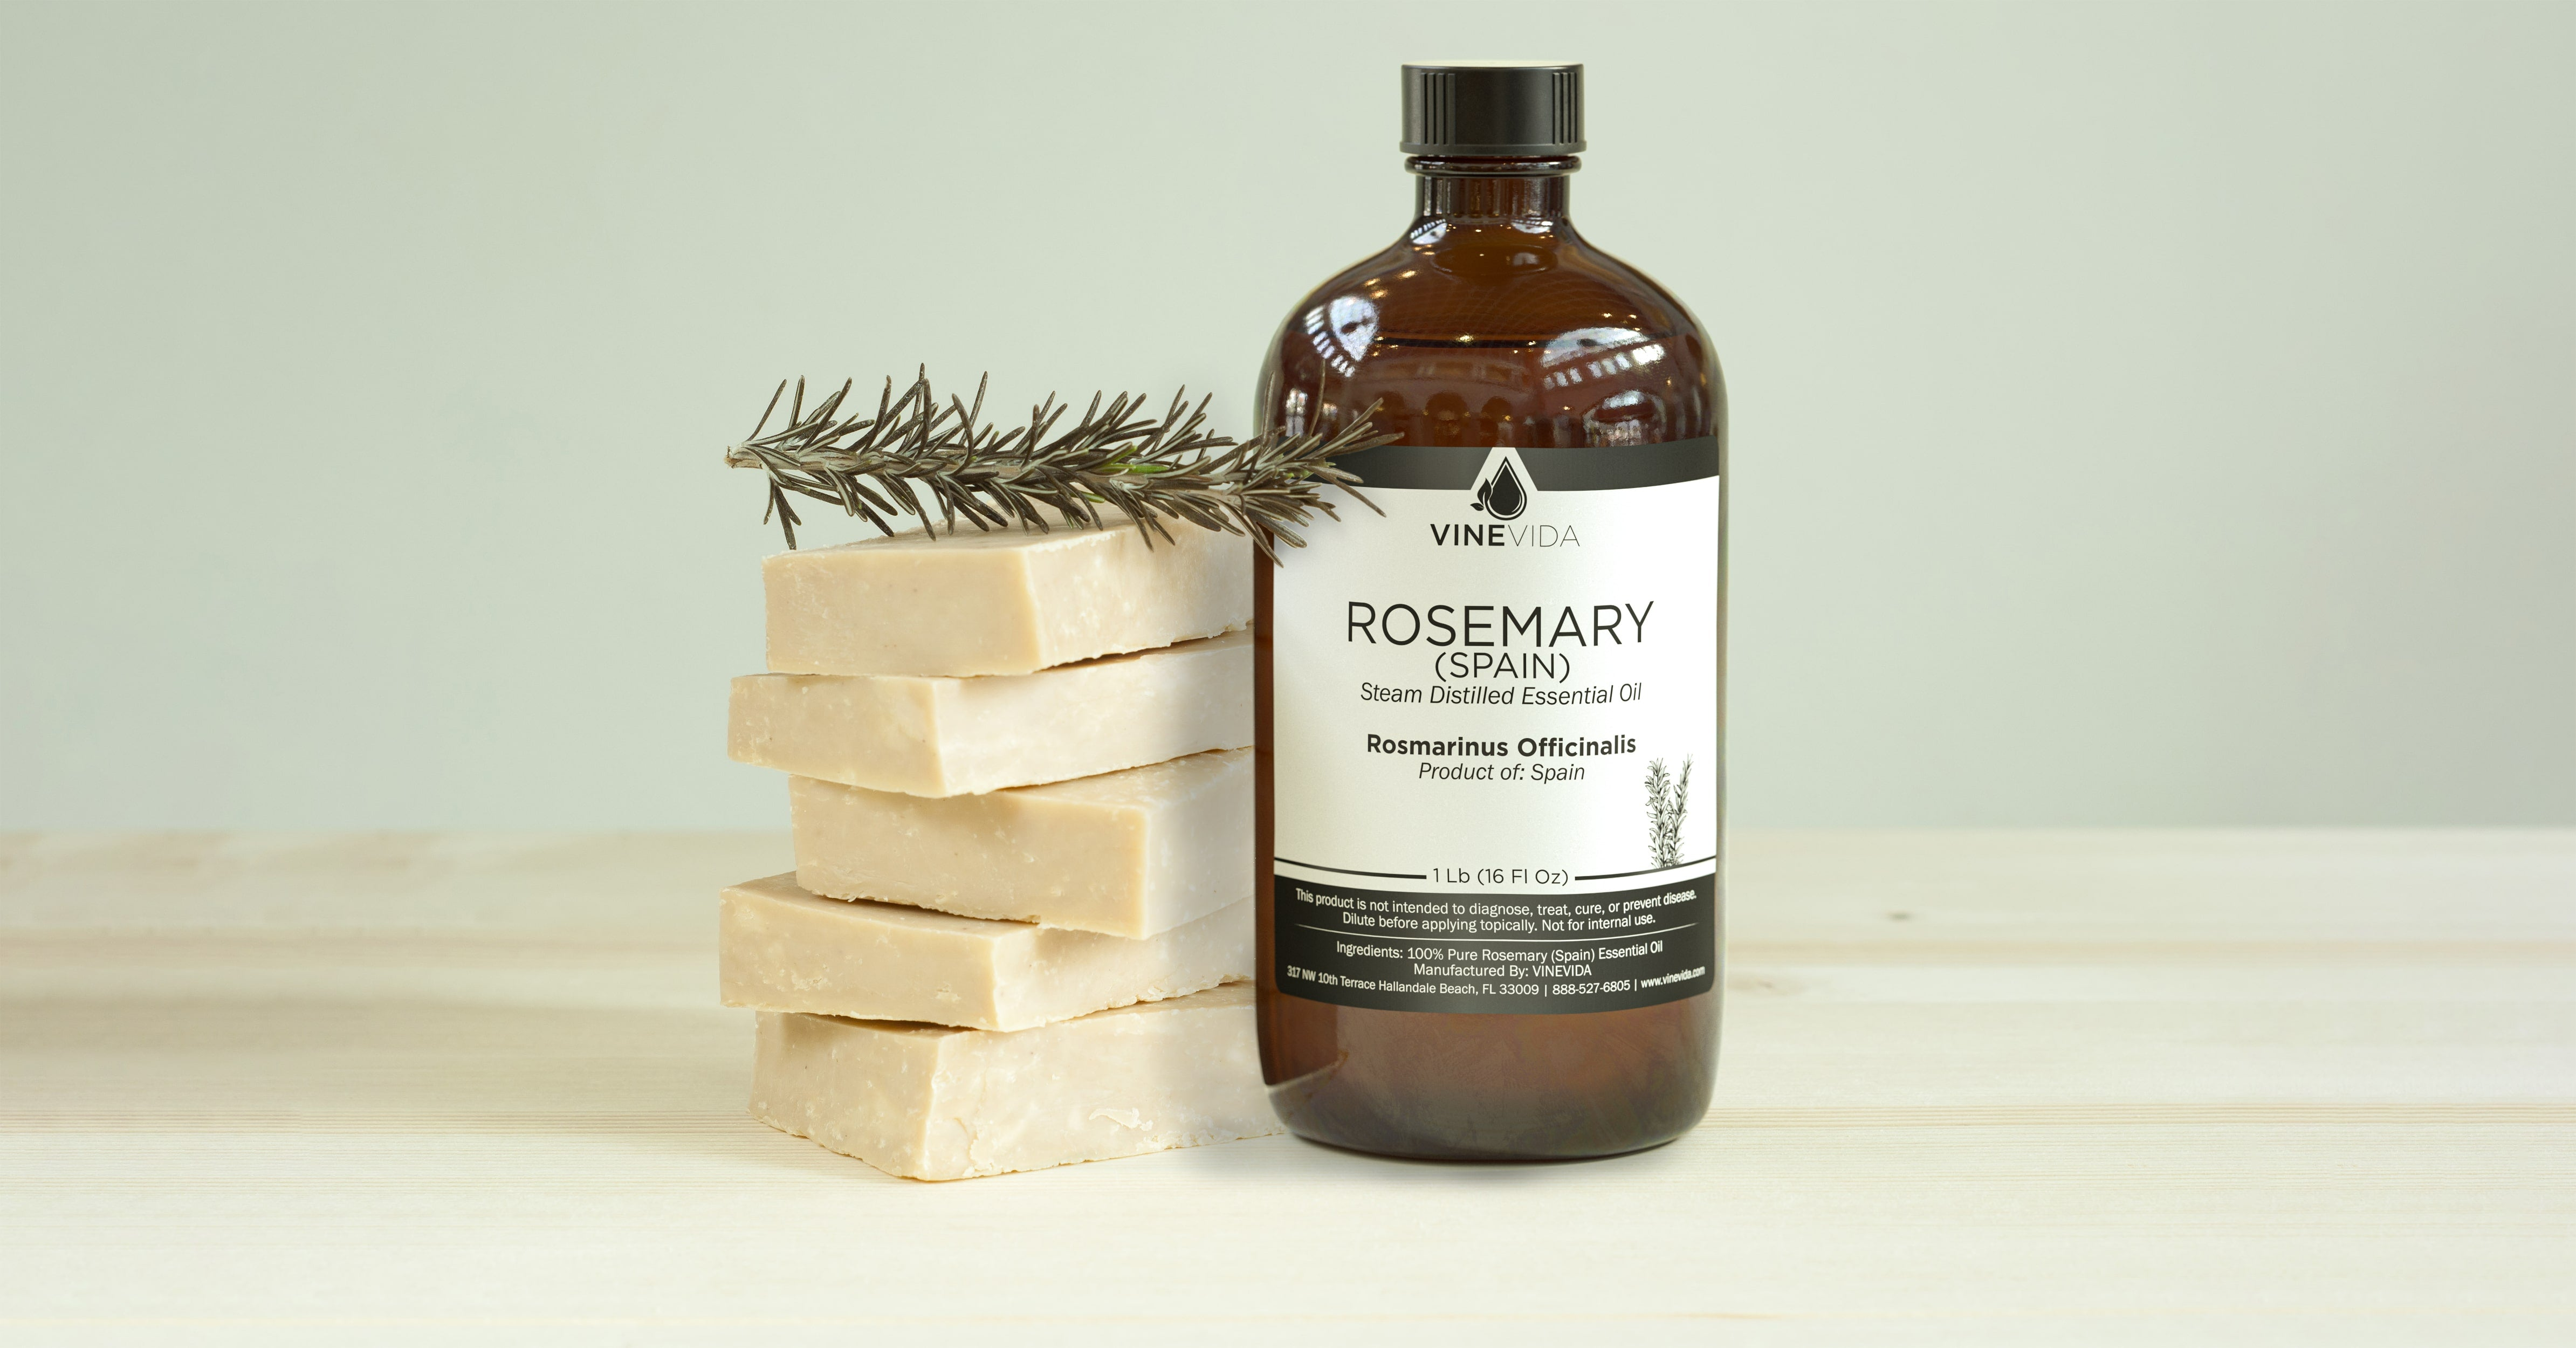 Spanish Rosemary Essential Oil Soapmaking